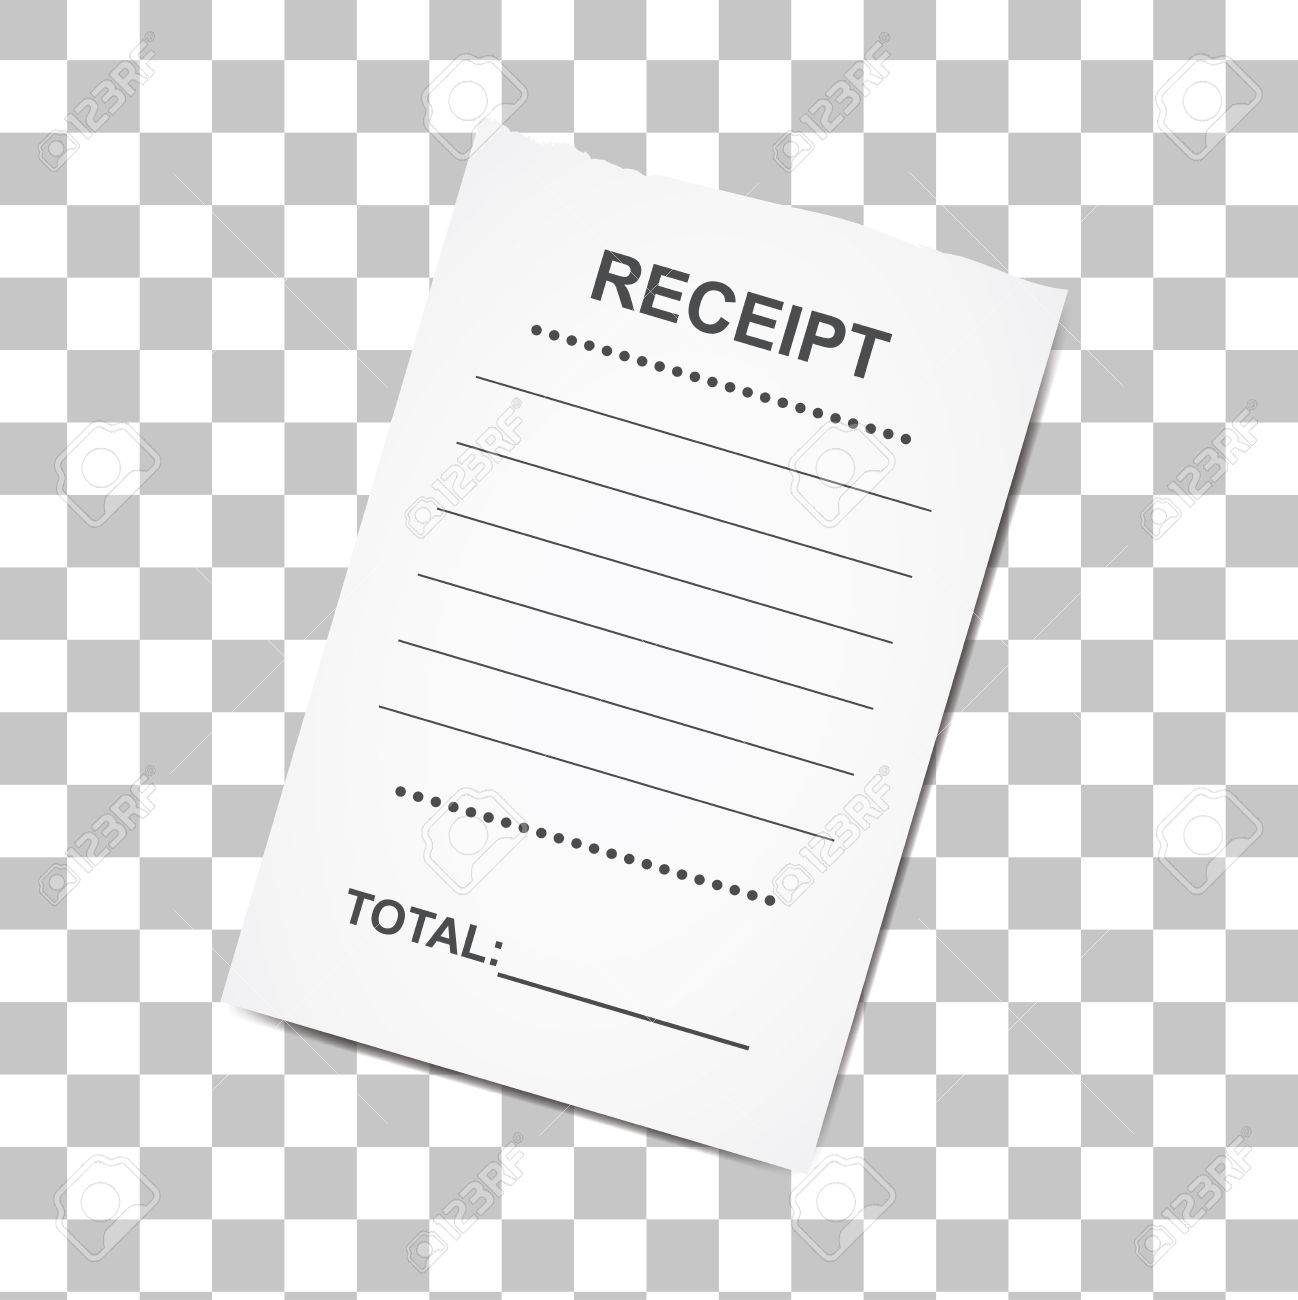 sales printed receipt template for bank cafe or restaurant paper